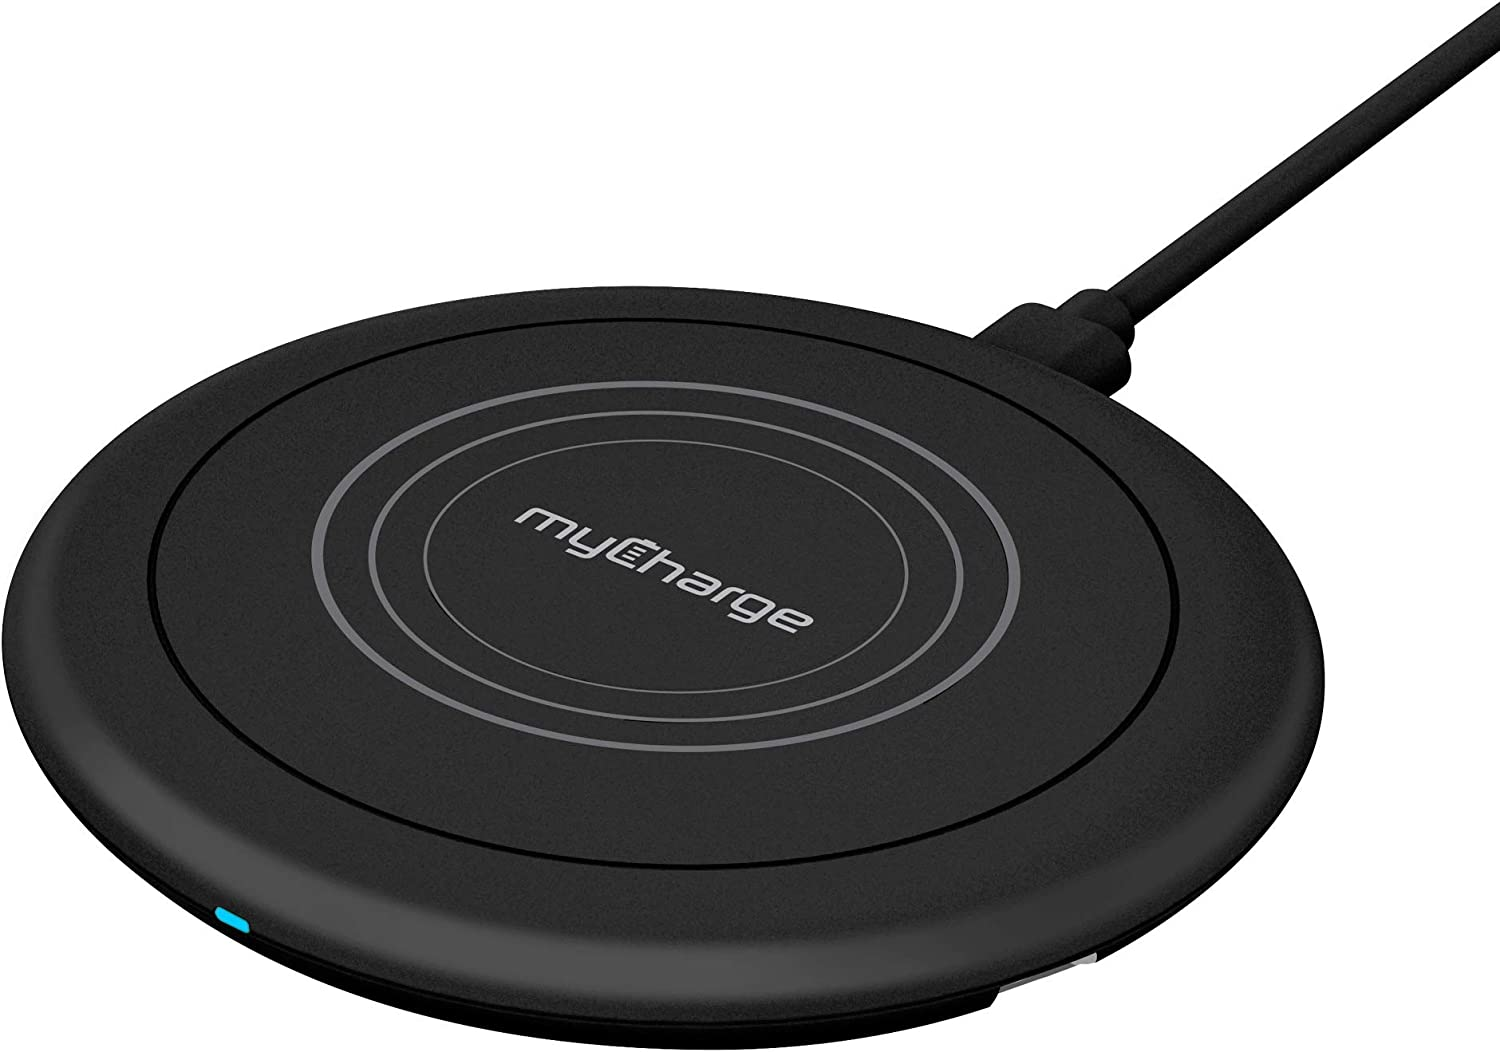 myCharge Wireless Charger 10W Qi Power Disk+ Fast Charge Wireless Charging Pad for Apple iPhone 11, 11 Pro/Max, XS/Max, XR, X, 8/Plus & Android for Samsung Galaxy S20, 10, 8, Note, Edge - Black